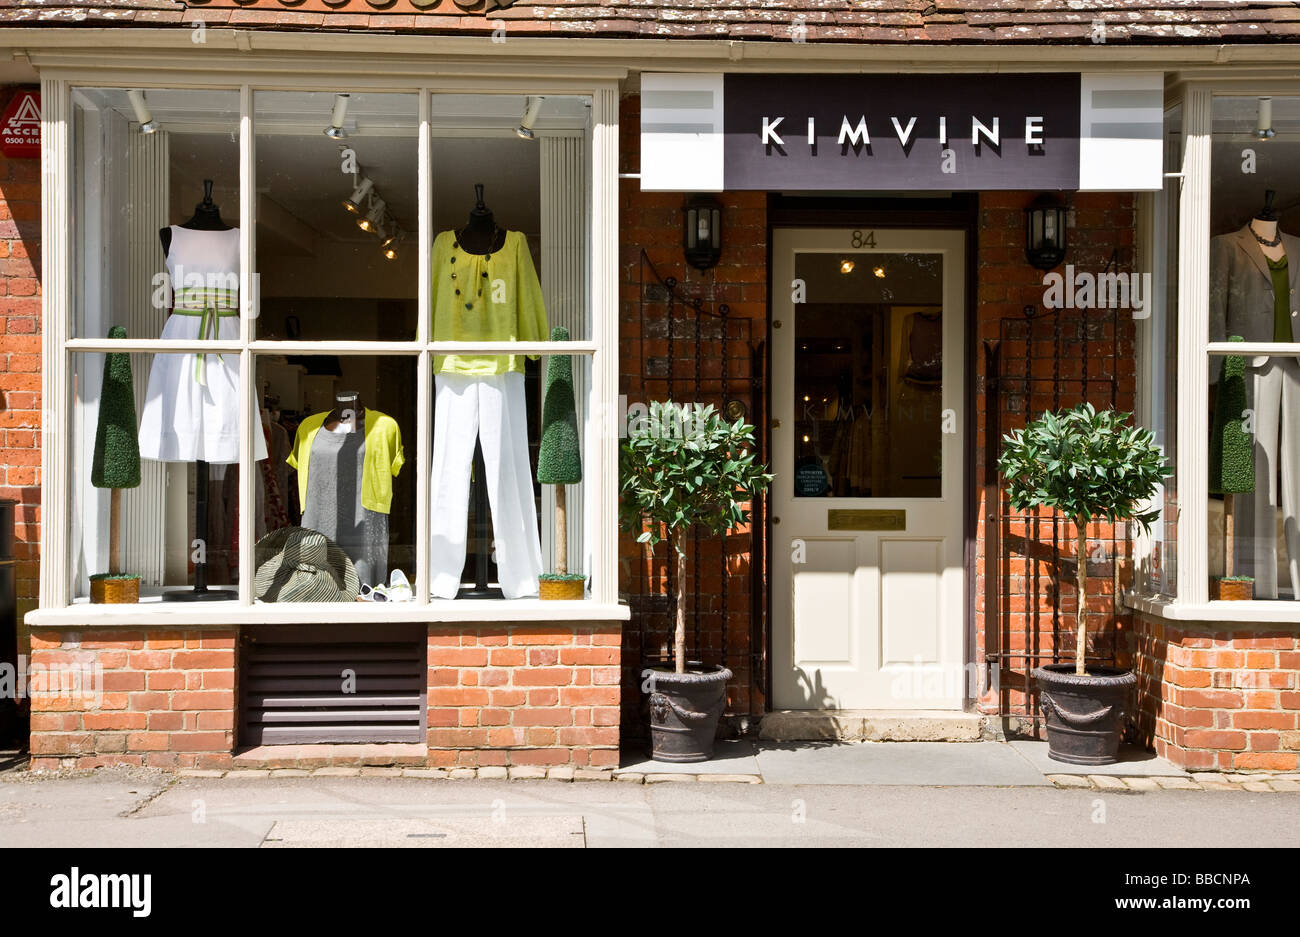 Window display of an upmarket ladies fashion clothing shop or boutique - Stock Image